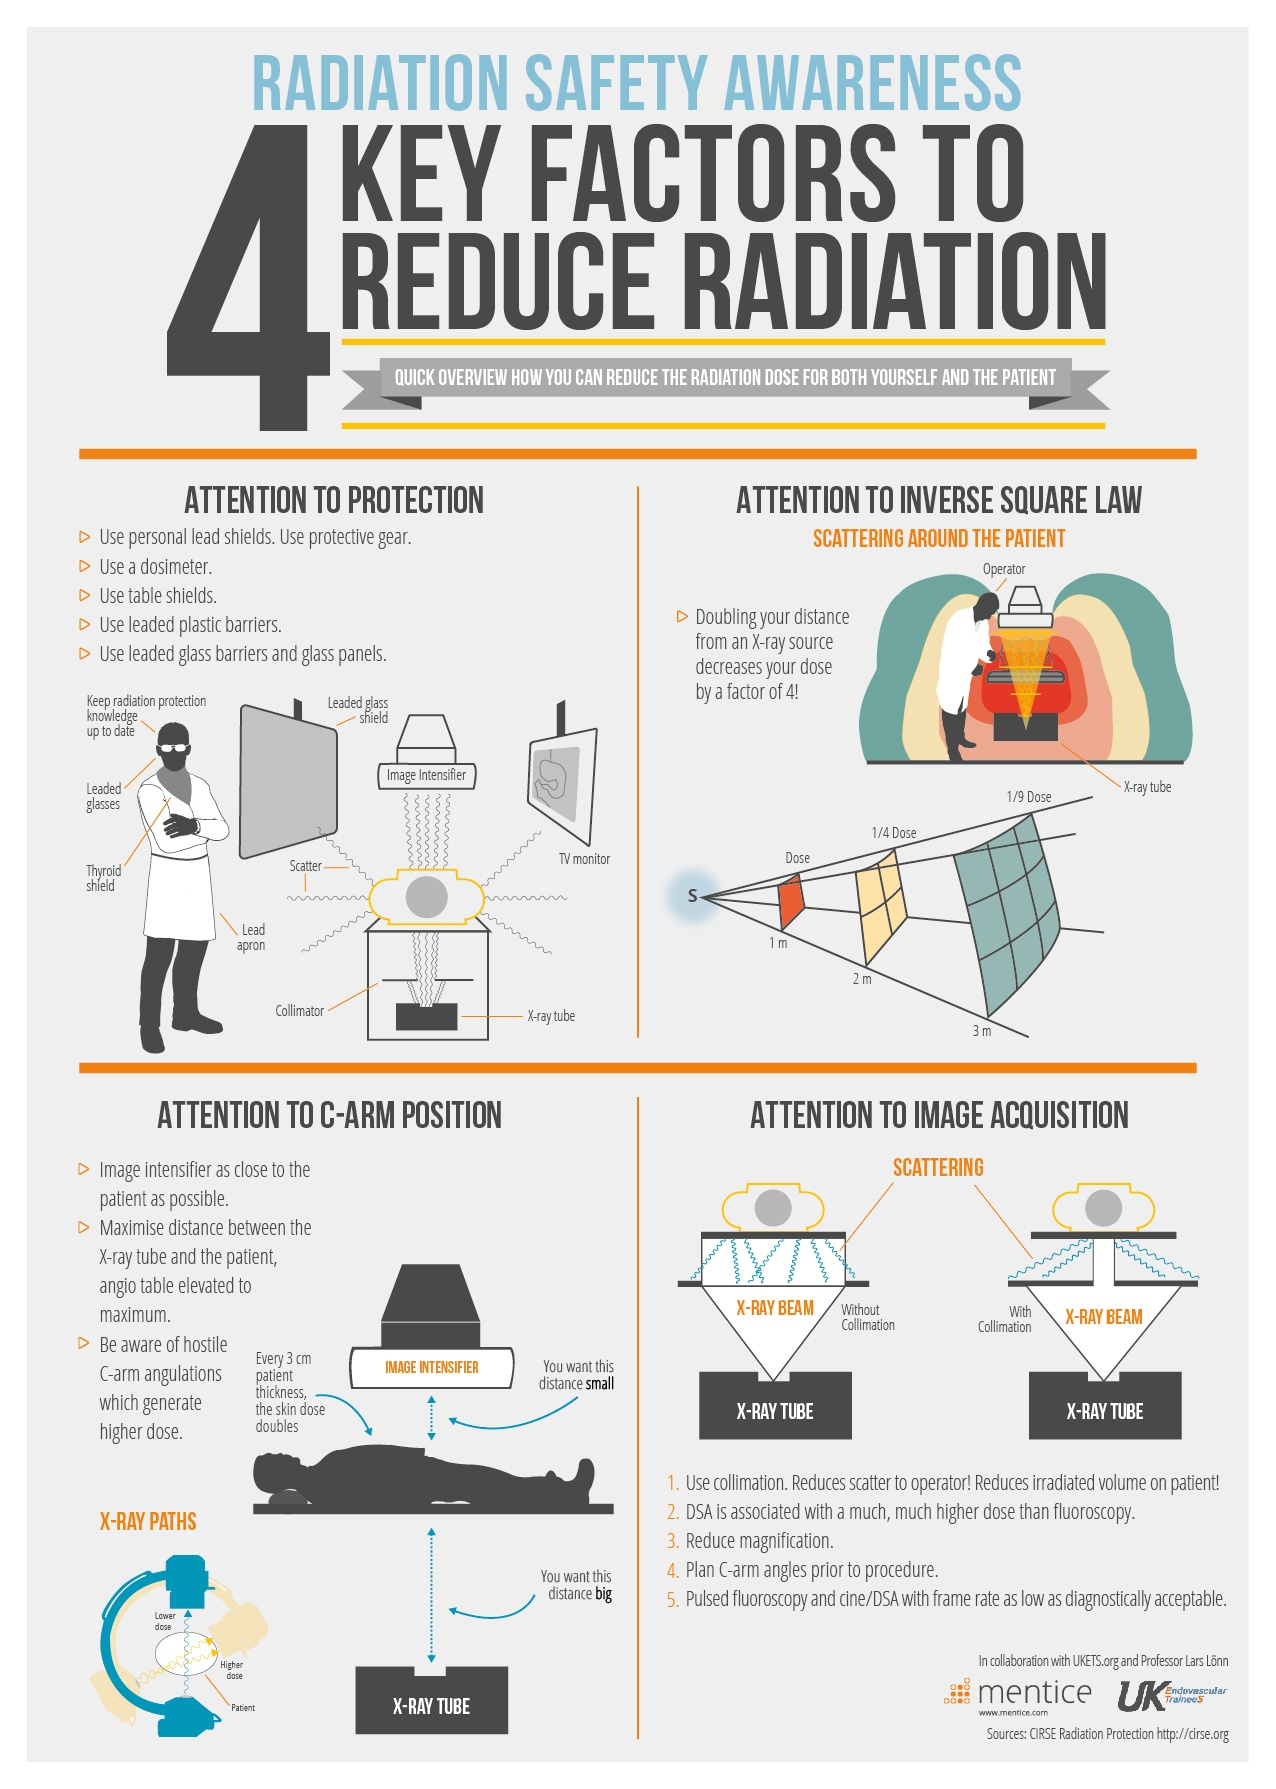 4 Key Factors to Reduce Radiation - Free Infographic / Poster